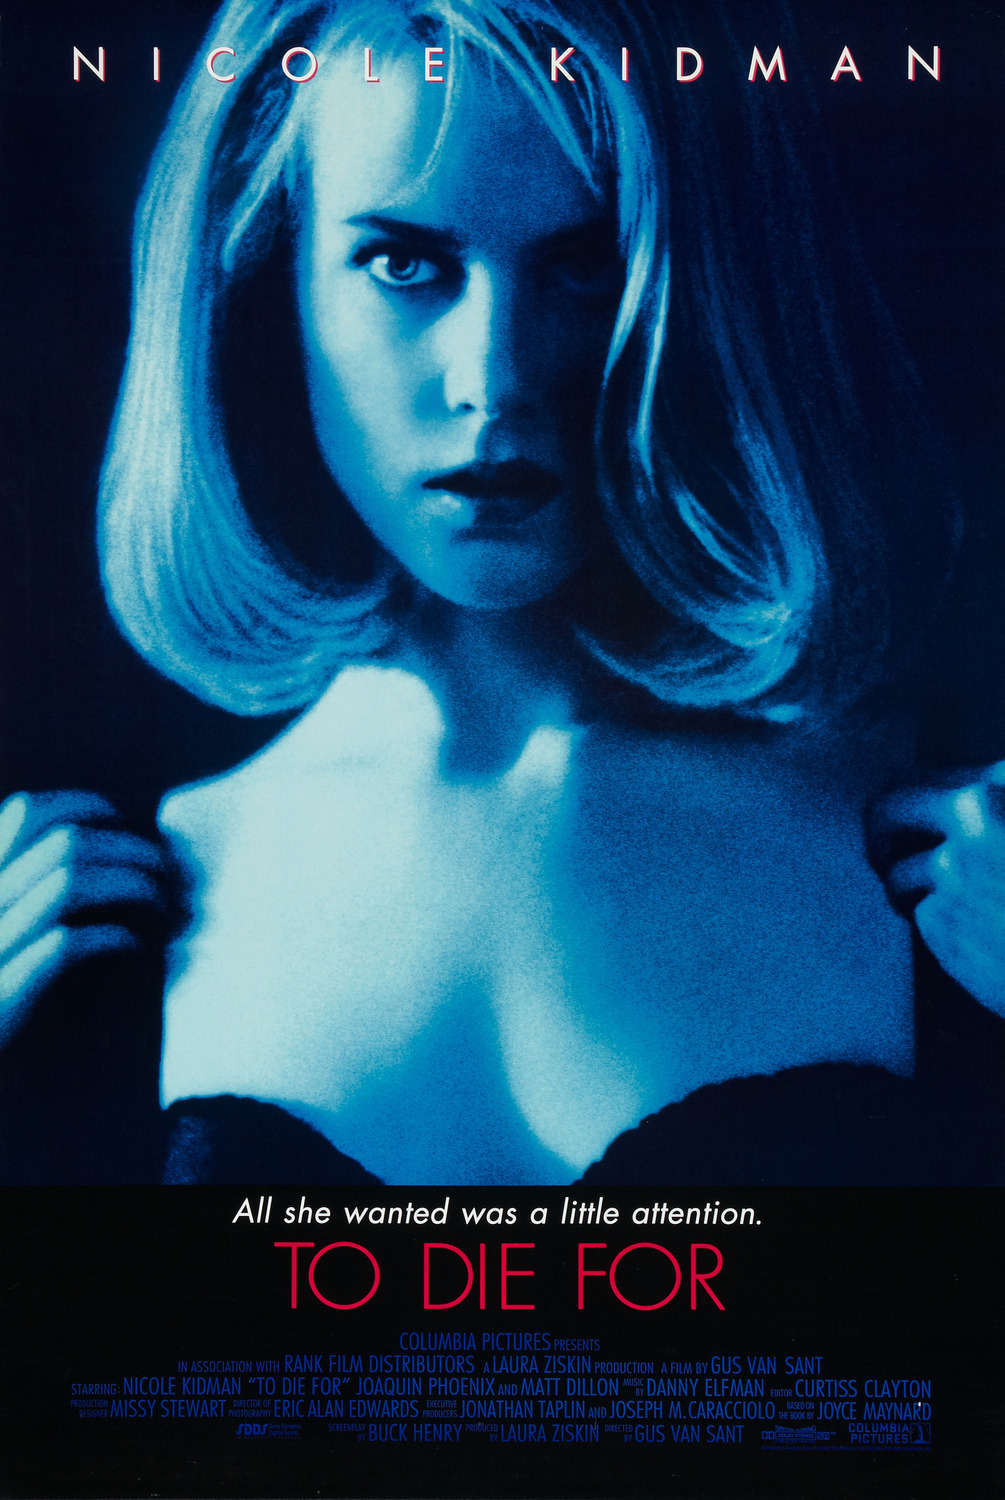 Nicole Kidman's Career in Posters, From 'Eyes Wide Shut' to 'Destroyer'